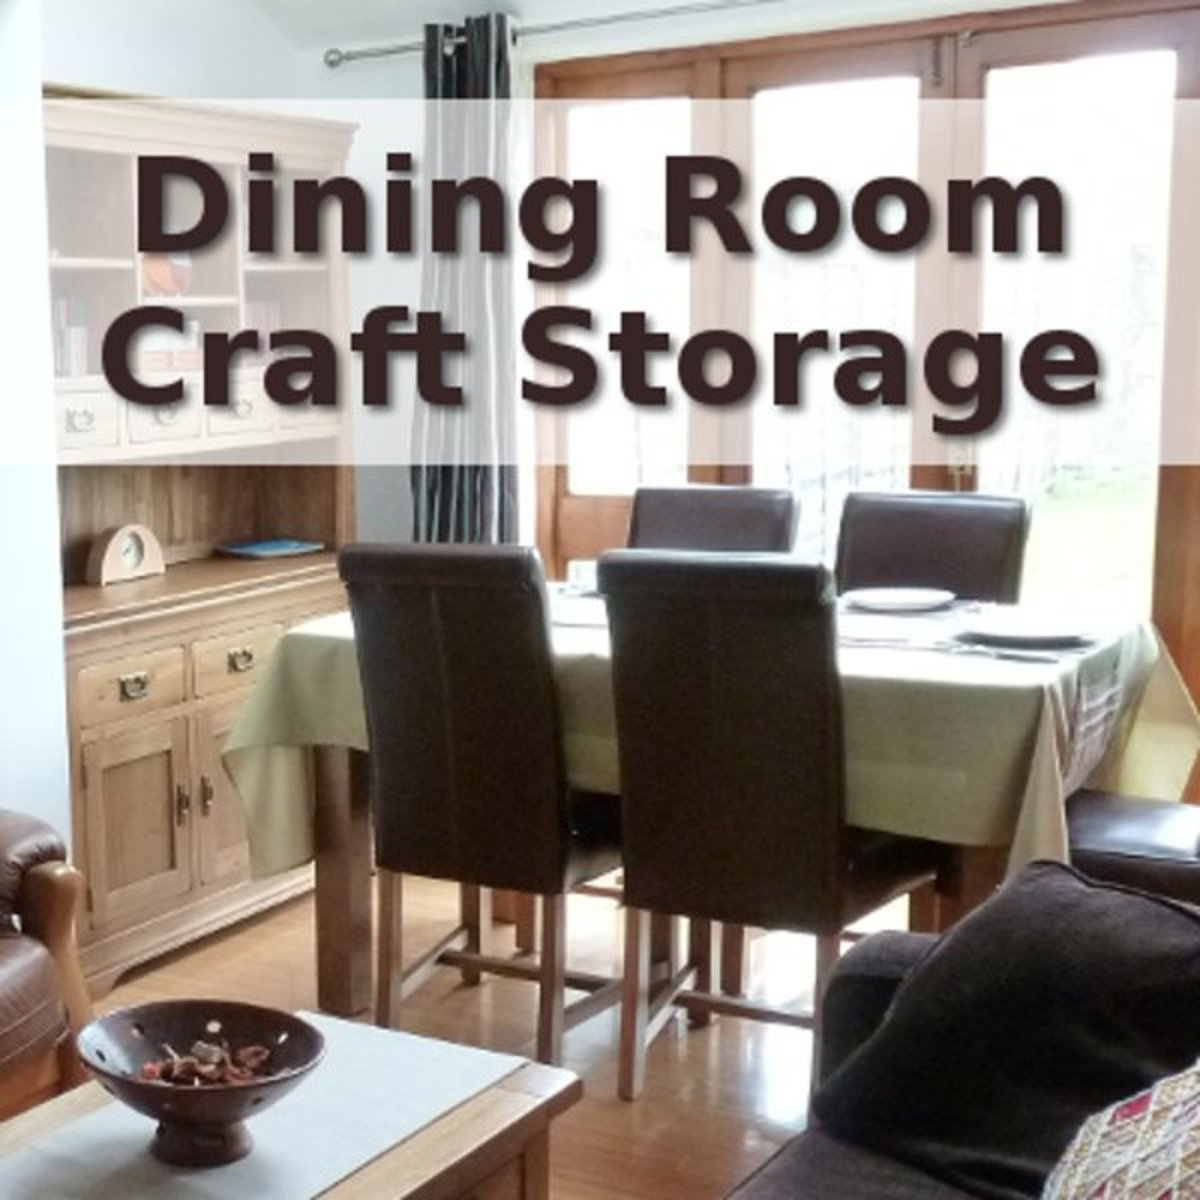 Dining room craft storage ideas and solutions